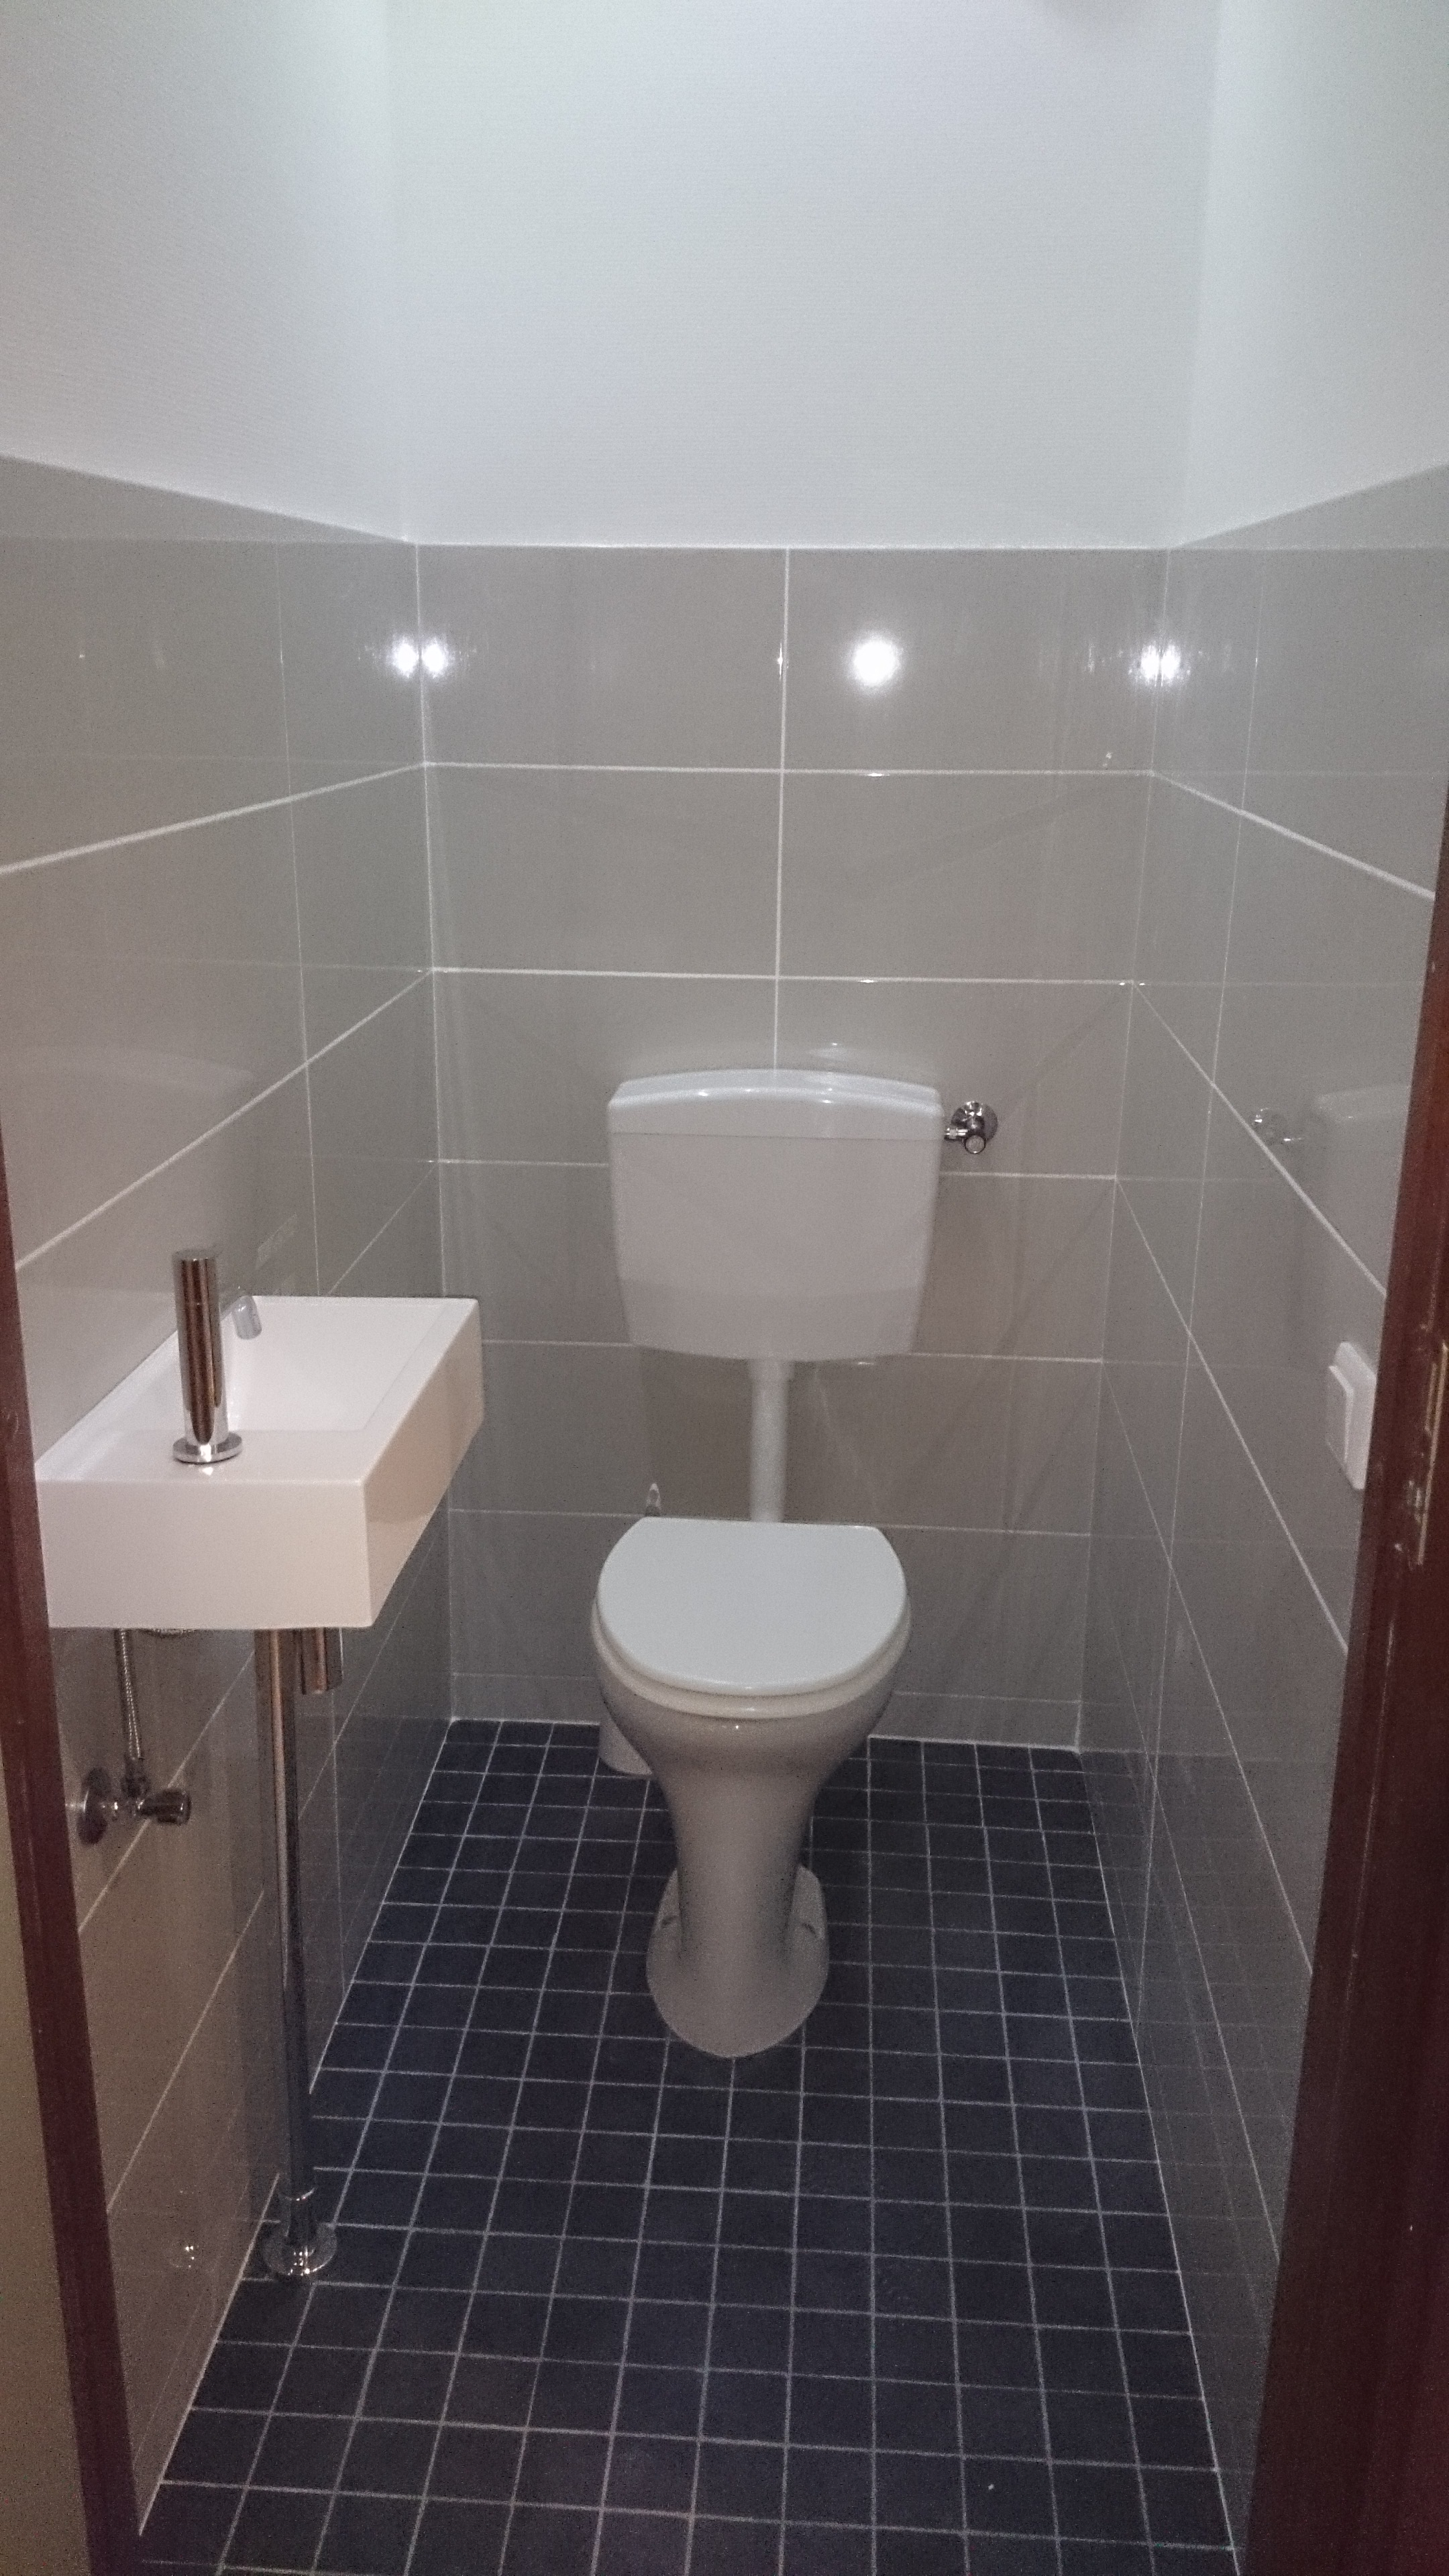 Toilet renovatie decotronics specialist toiletrenovatie - Tegel voor toilet ...